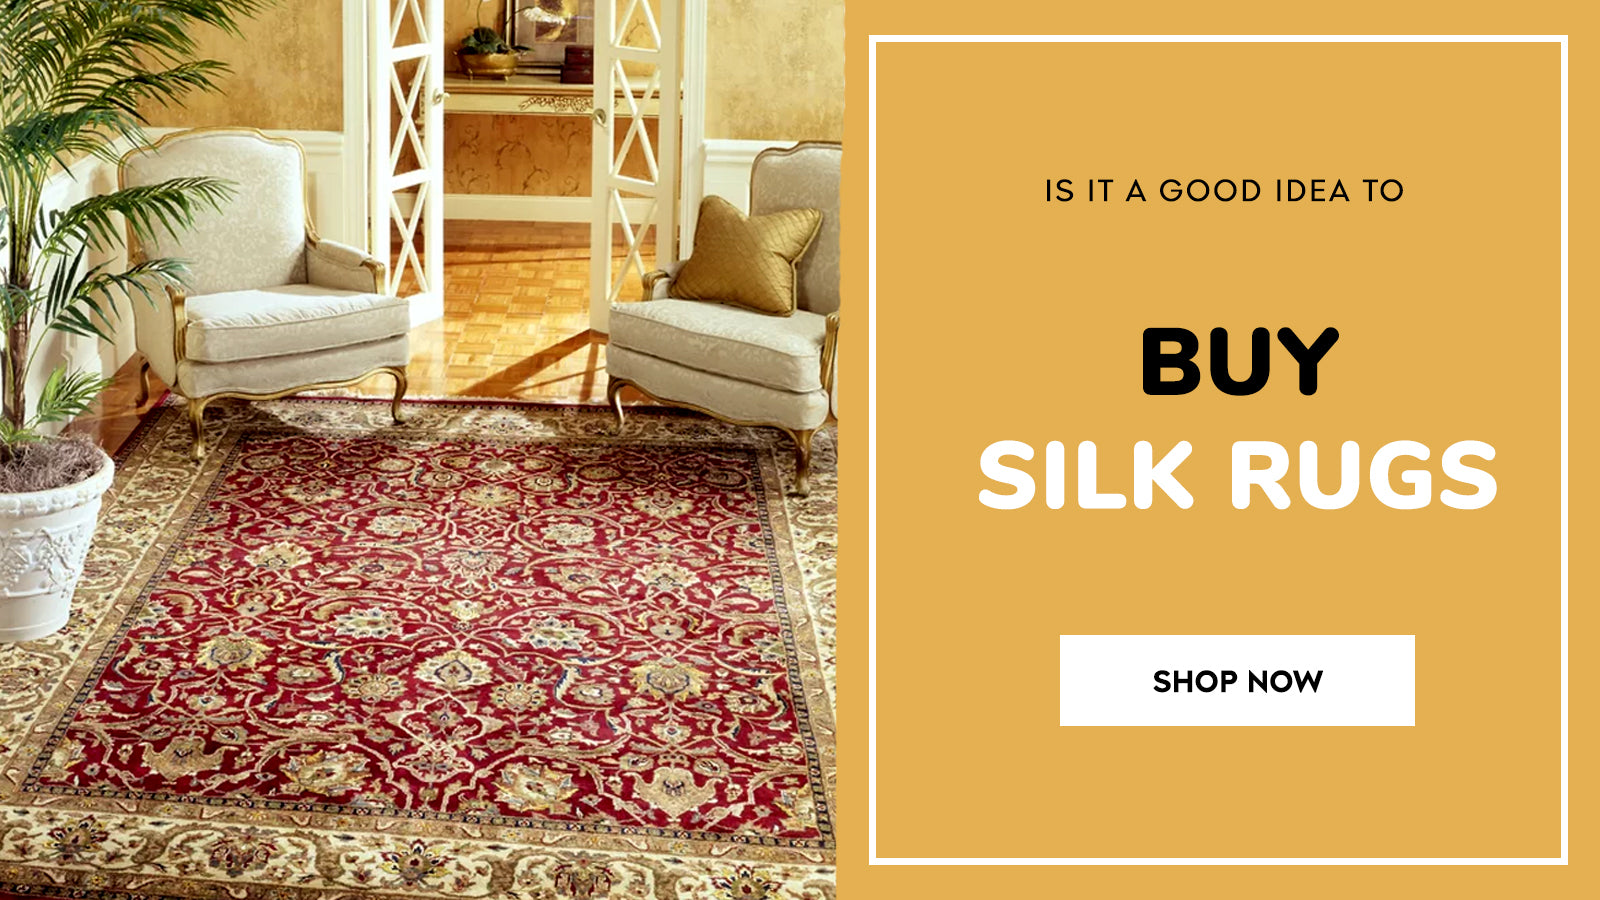 Miraculous How To Choose The Best Rug Shape According To Your Space Download Free Architecture Designs Sospemadebymaigaardcom